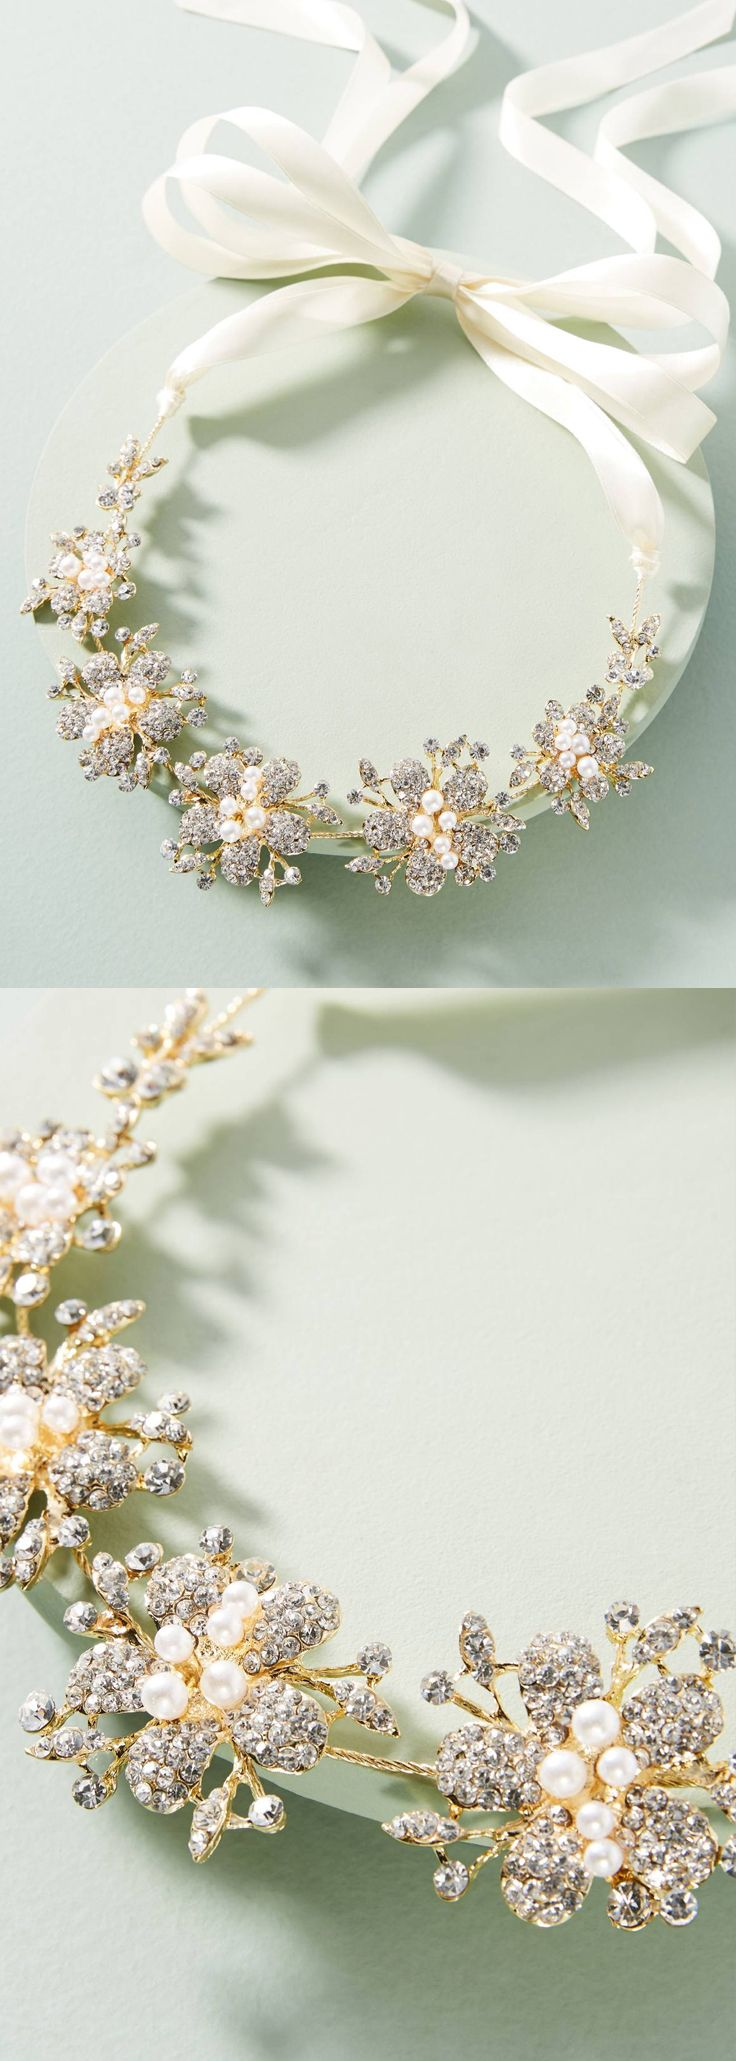 Pearled Bridal Headband $48.00. Bridal hair vine - Sugary sweet floral bridal wedding headpiece. A sweet and sparkly vine on White satin ribbon, with darling flowers. This headband is classic and elegant and can be worn in the crown position, or tied angled as would an alice band. Wedding Bridal Hair Hairvine inspiration. #bridal #springwedding #headband #bridalheadband #bridalvine #hairvine #bridalaccessories #weddingideas #bridalhair #weddinghair #affiliatelink #millinery #winterwedding